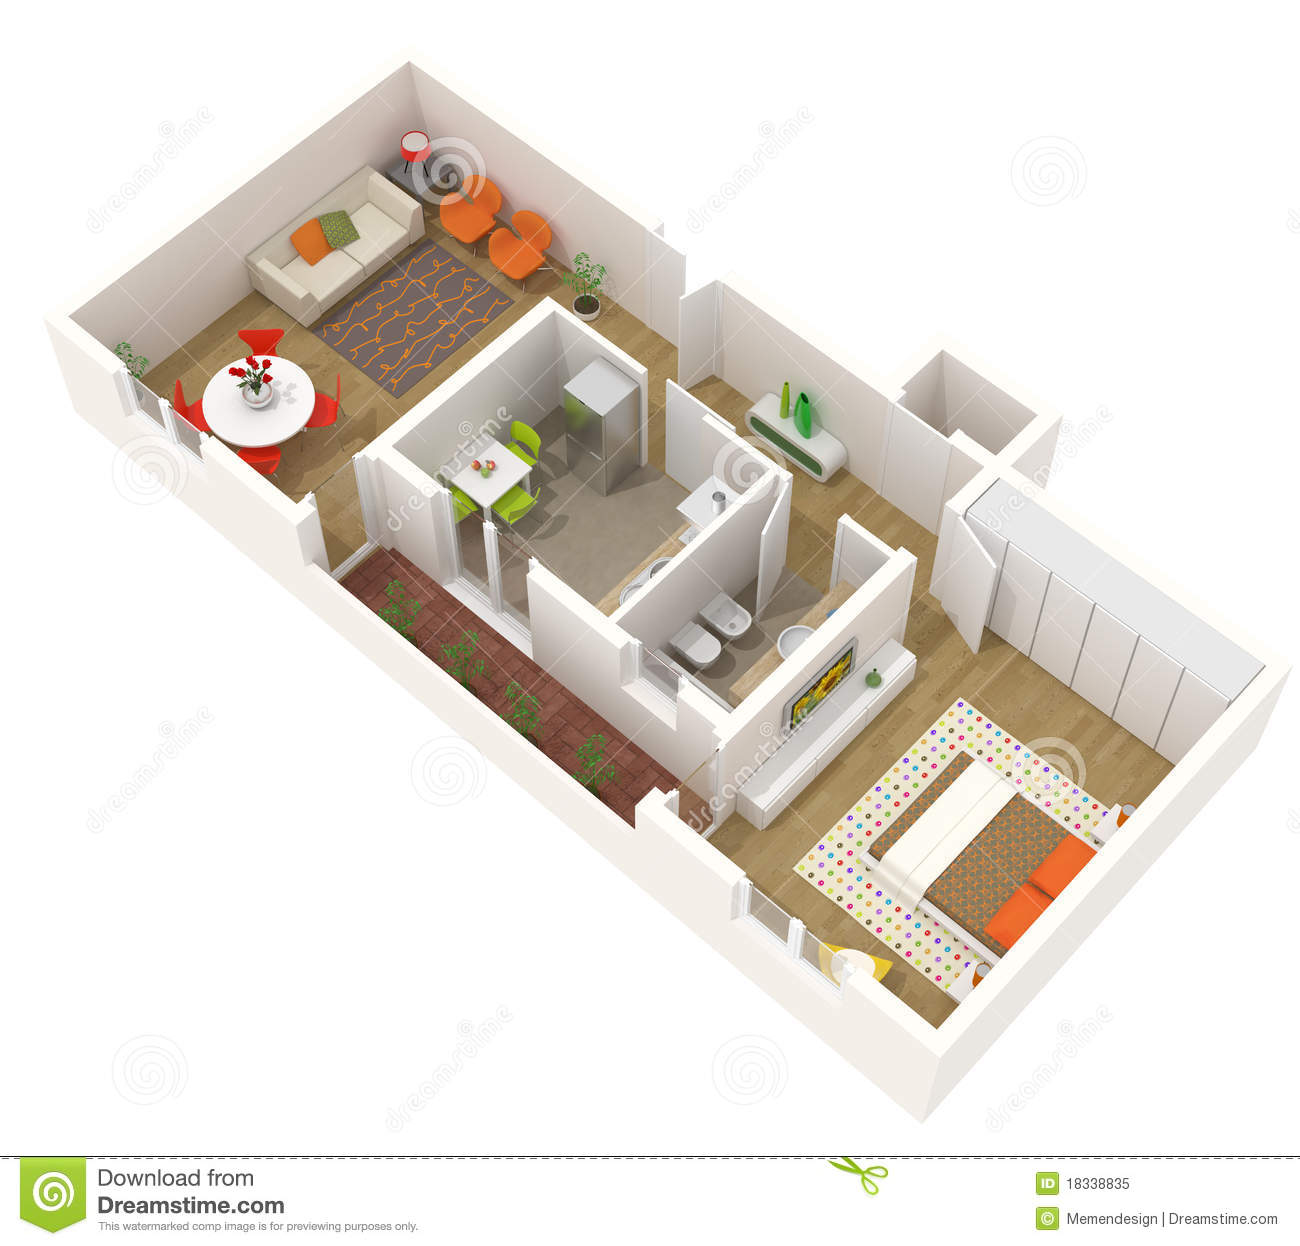 Apartment design 3d floor plan stock illustration for 3d apartment floor plans